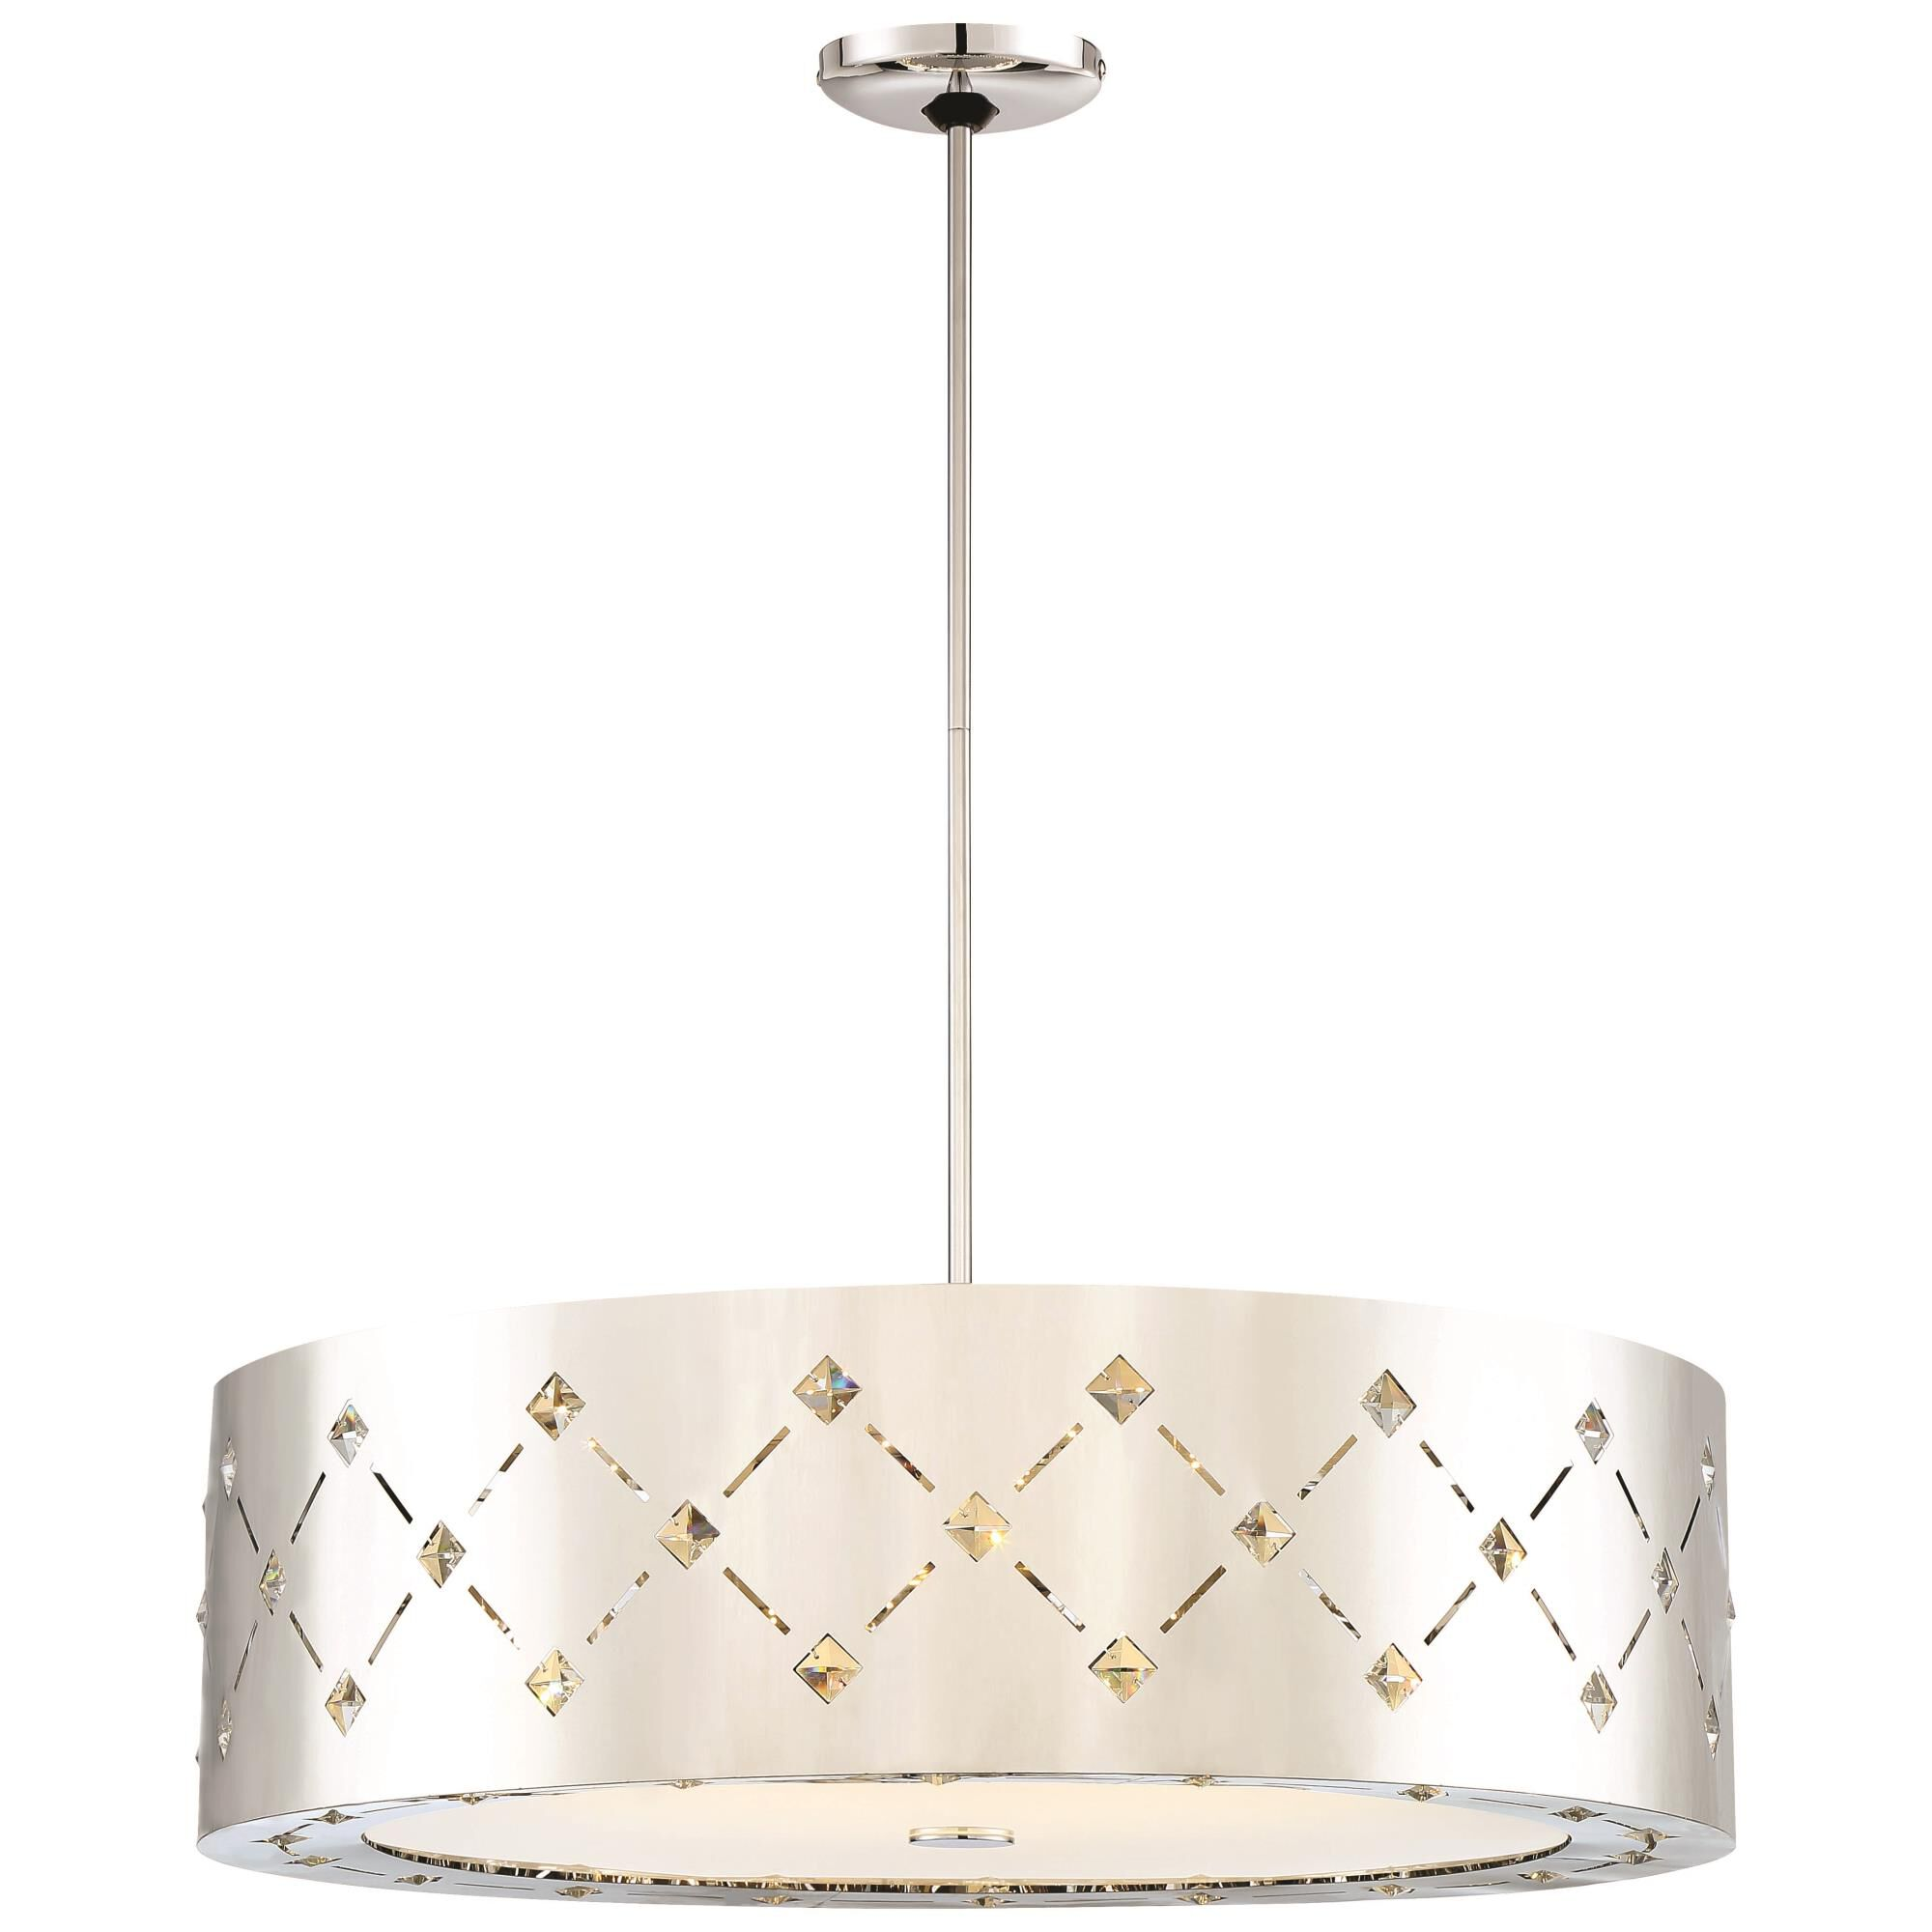 Kovacs Crowned 28 Inch Led Large Pendant Crowned - P1035-077-l